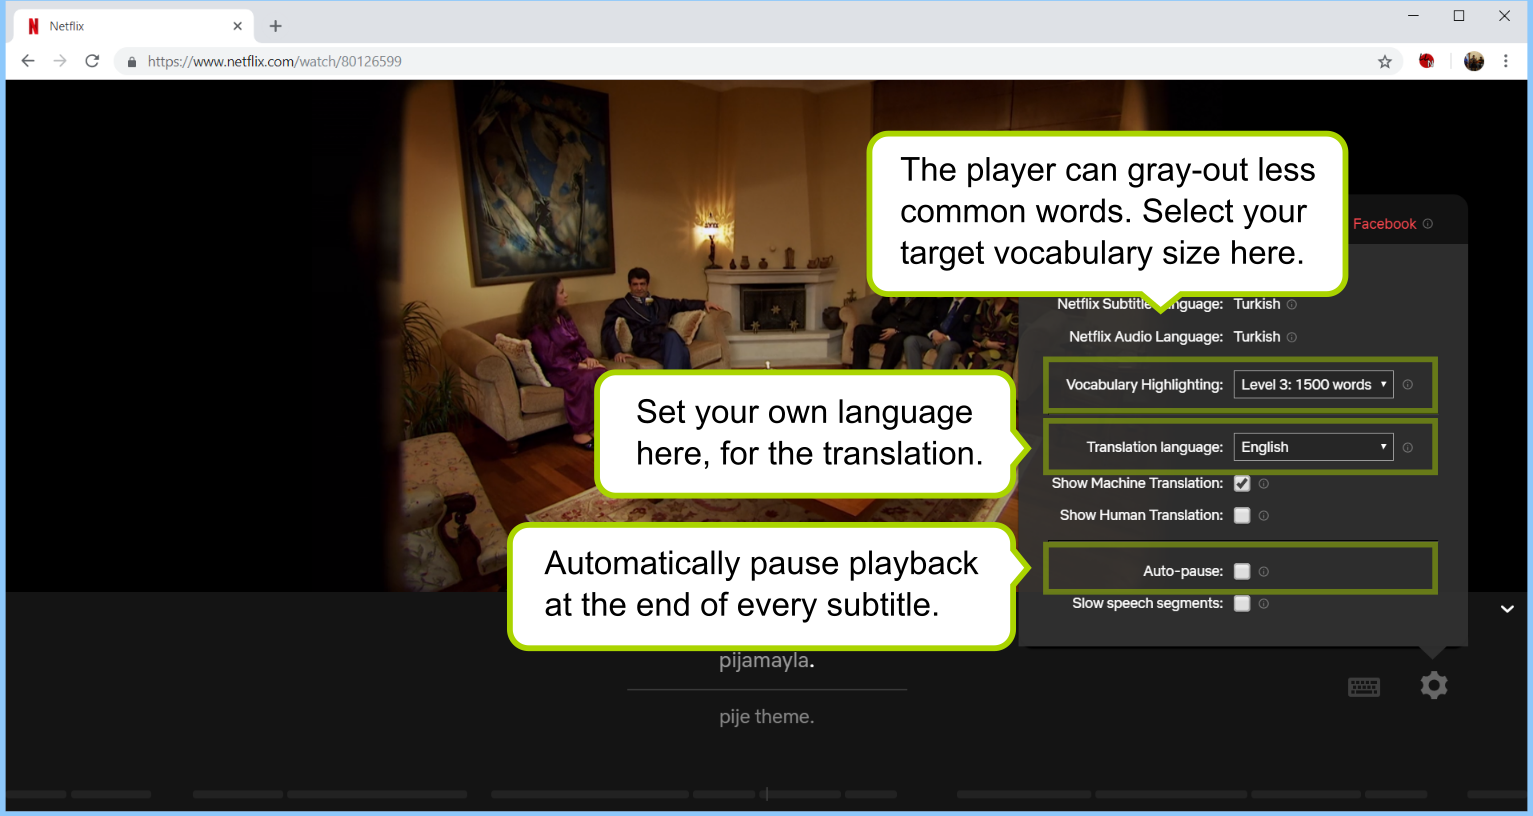 Learn A Language While You Watch Netflix With The Help Of This New